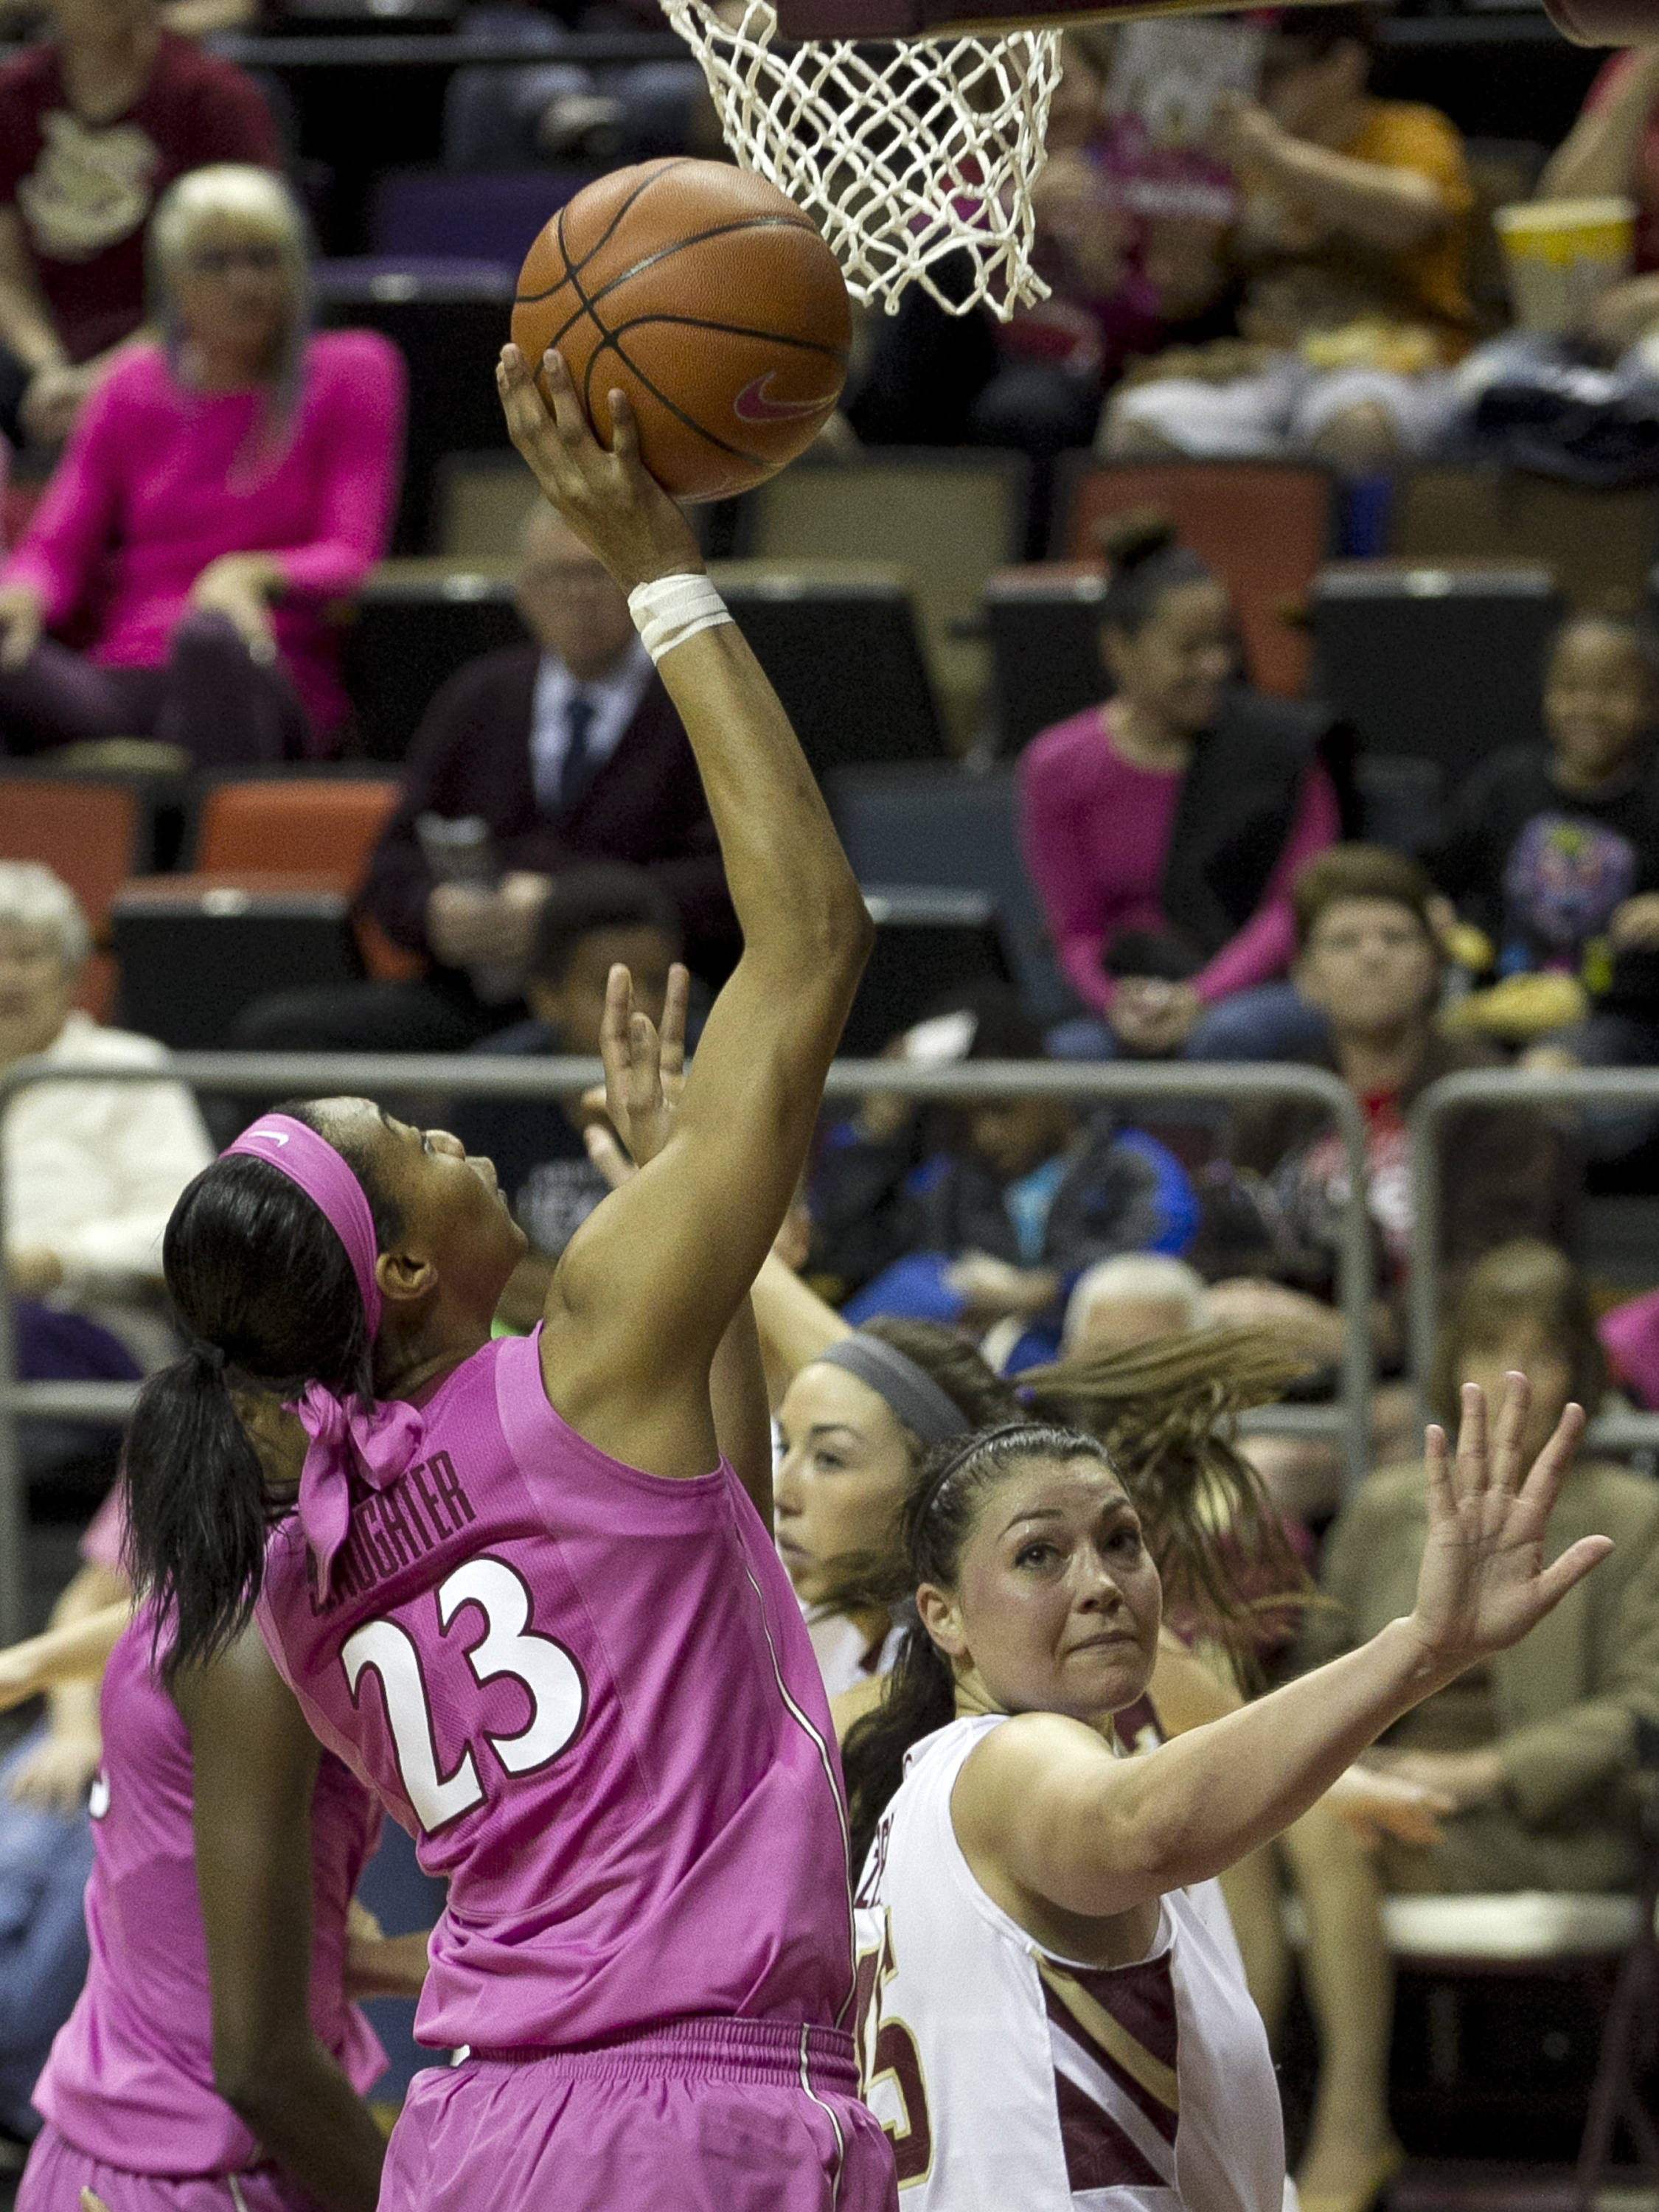 Ivey Slaughter (23) with a put back layup, FSU vs Boston College, 2-09-14, (Photo's by Steve Musco)